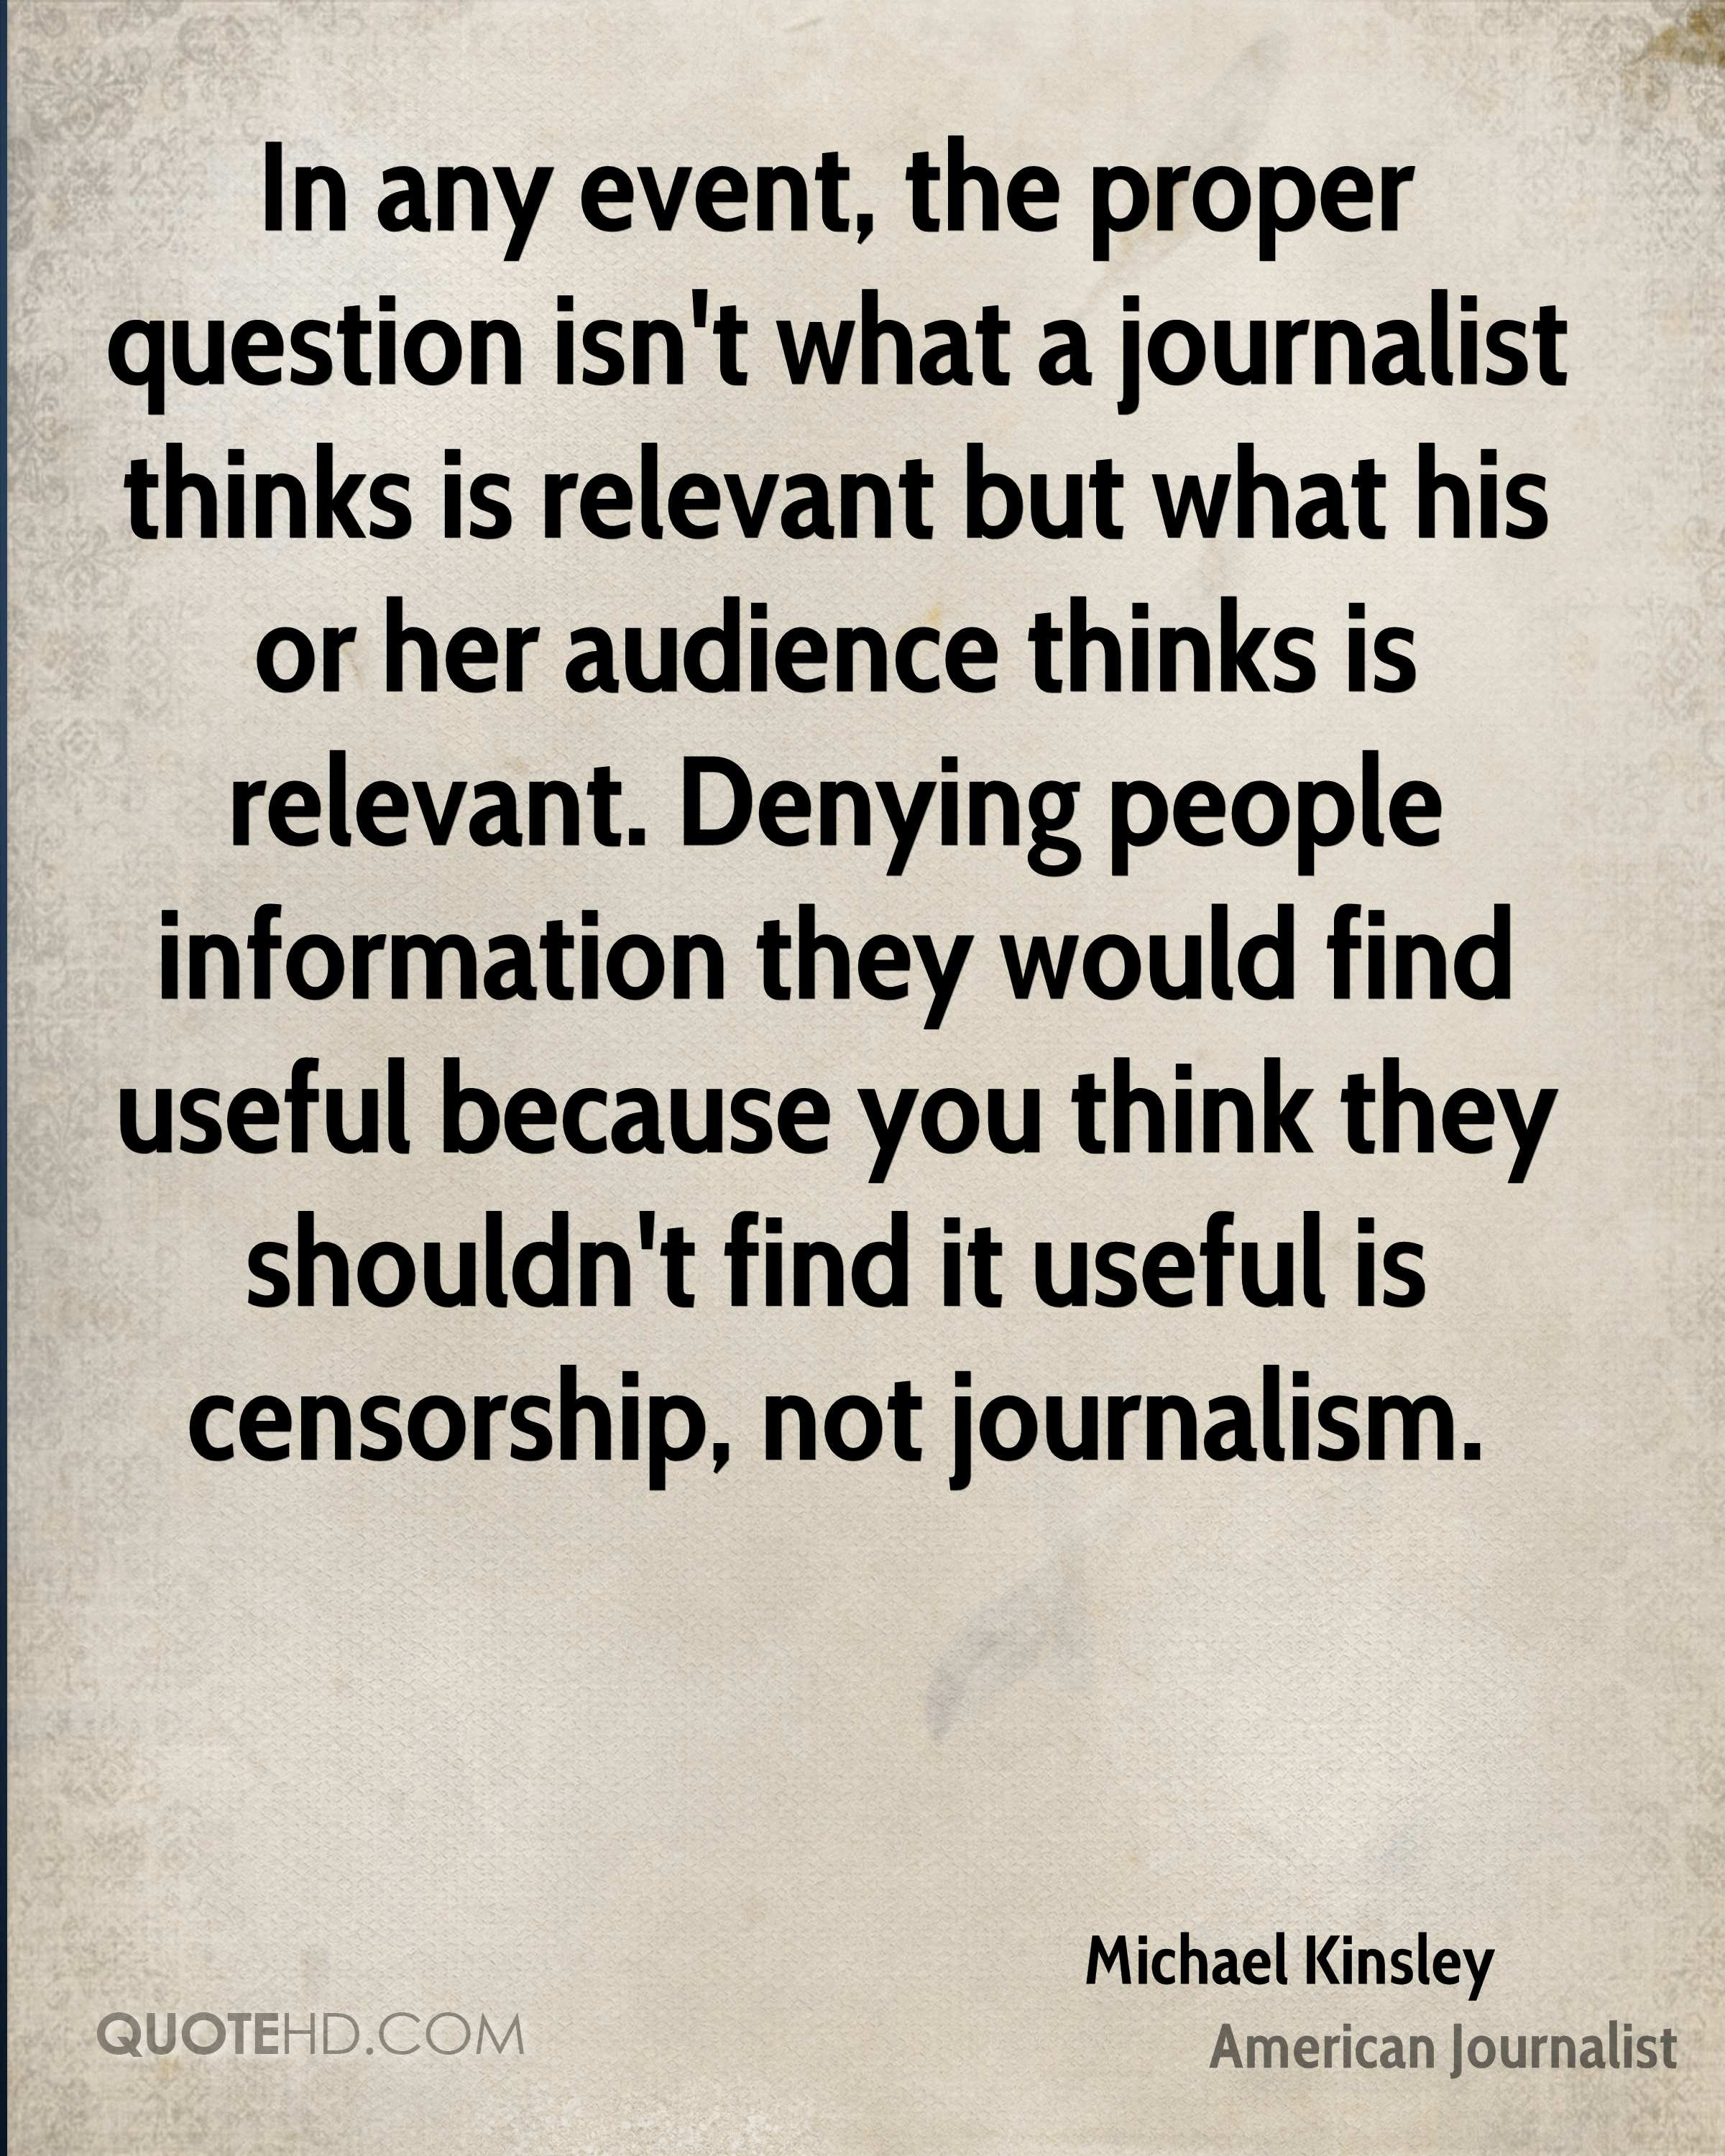 In any event, the proper question isn't what a journalist thinks is relevant but what his or her audience thinks is relevant. Denying people information they would find useful because you think they shouldn't find it useful is censorship, not journalism.